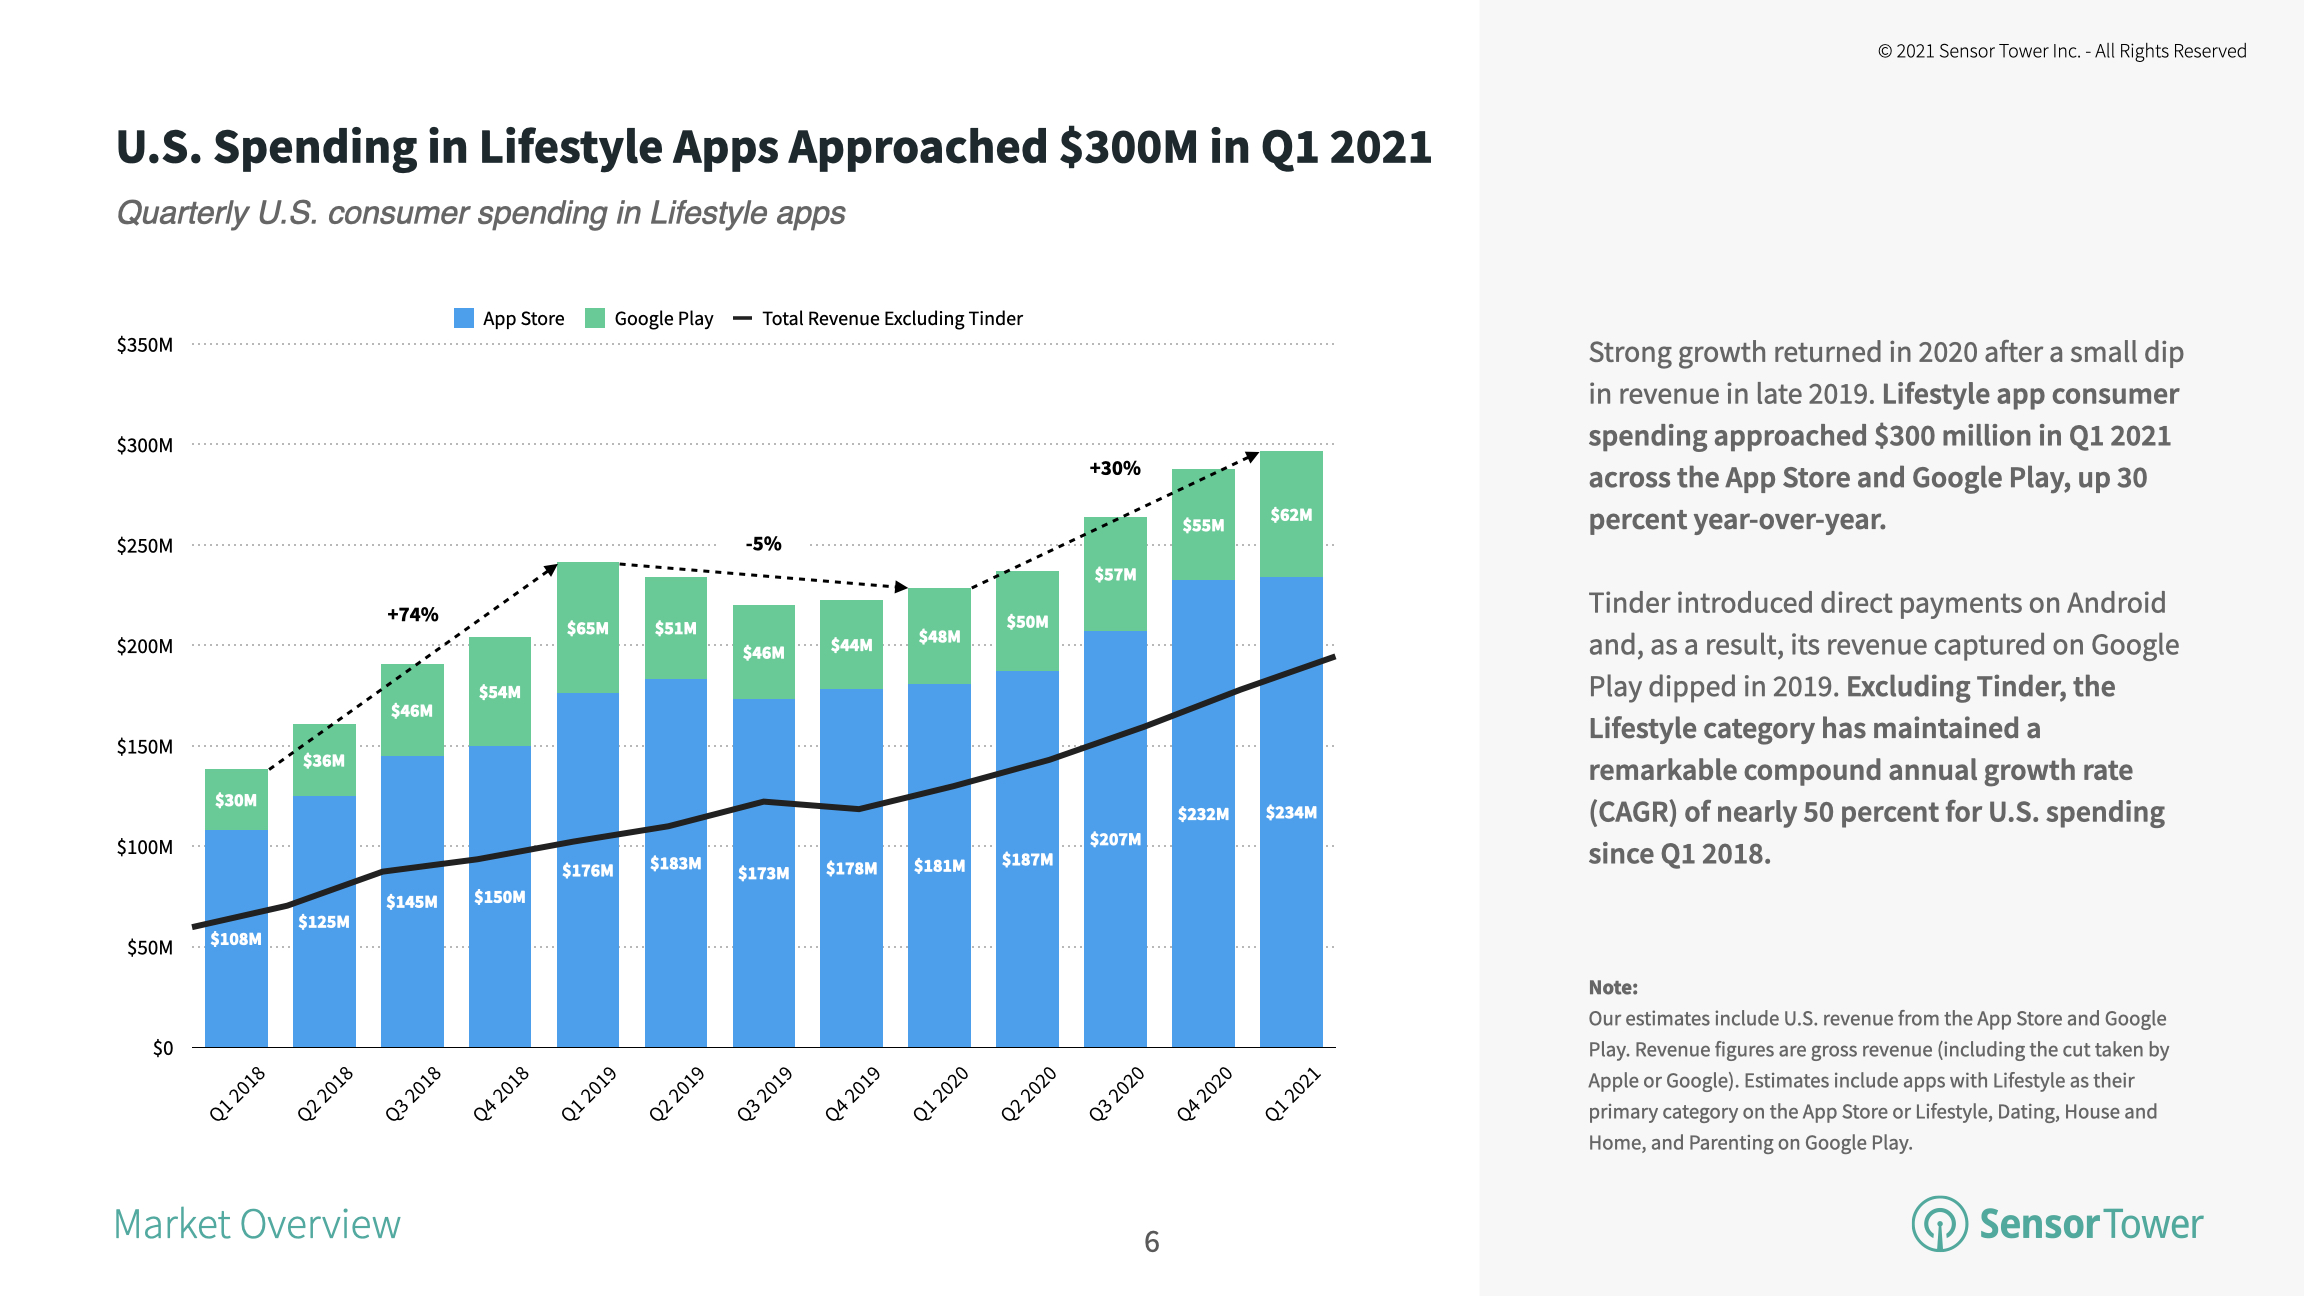 U.S. spending in Lifestyle apps reached nearly $300 million in Q1 2021.